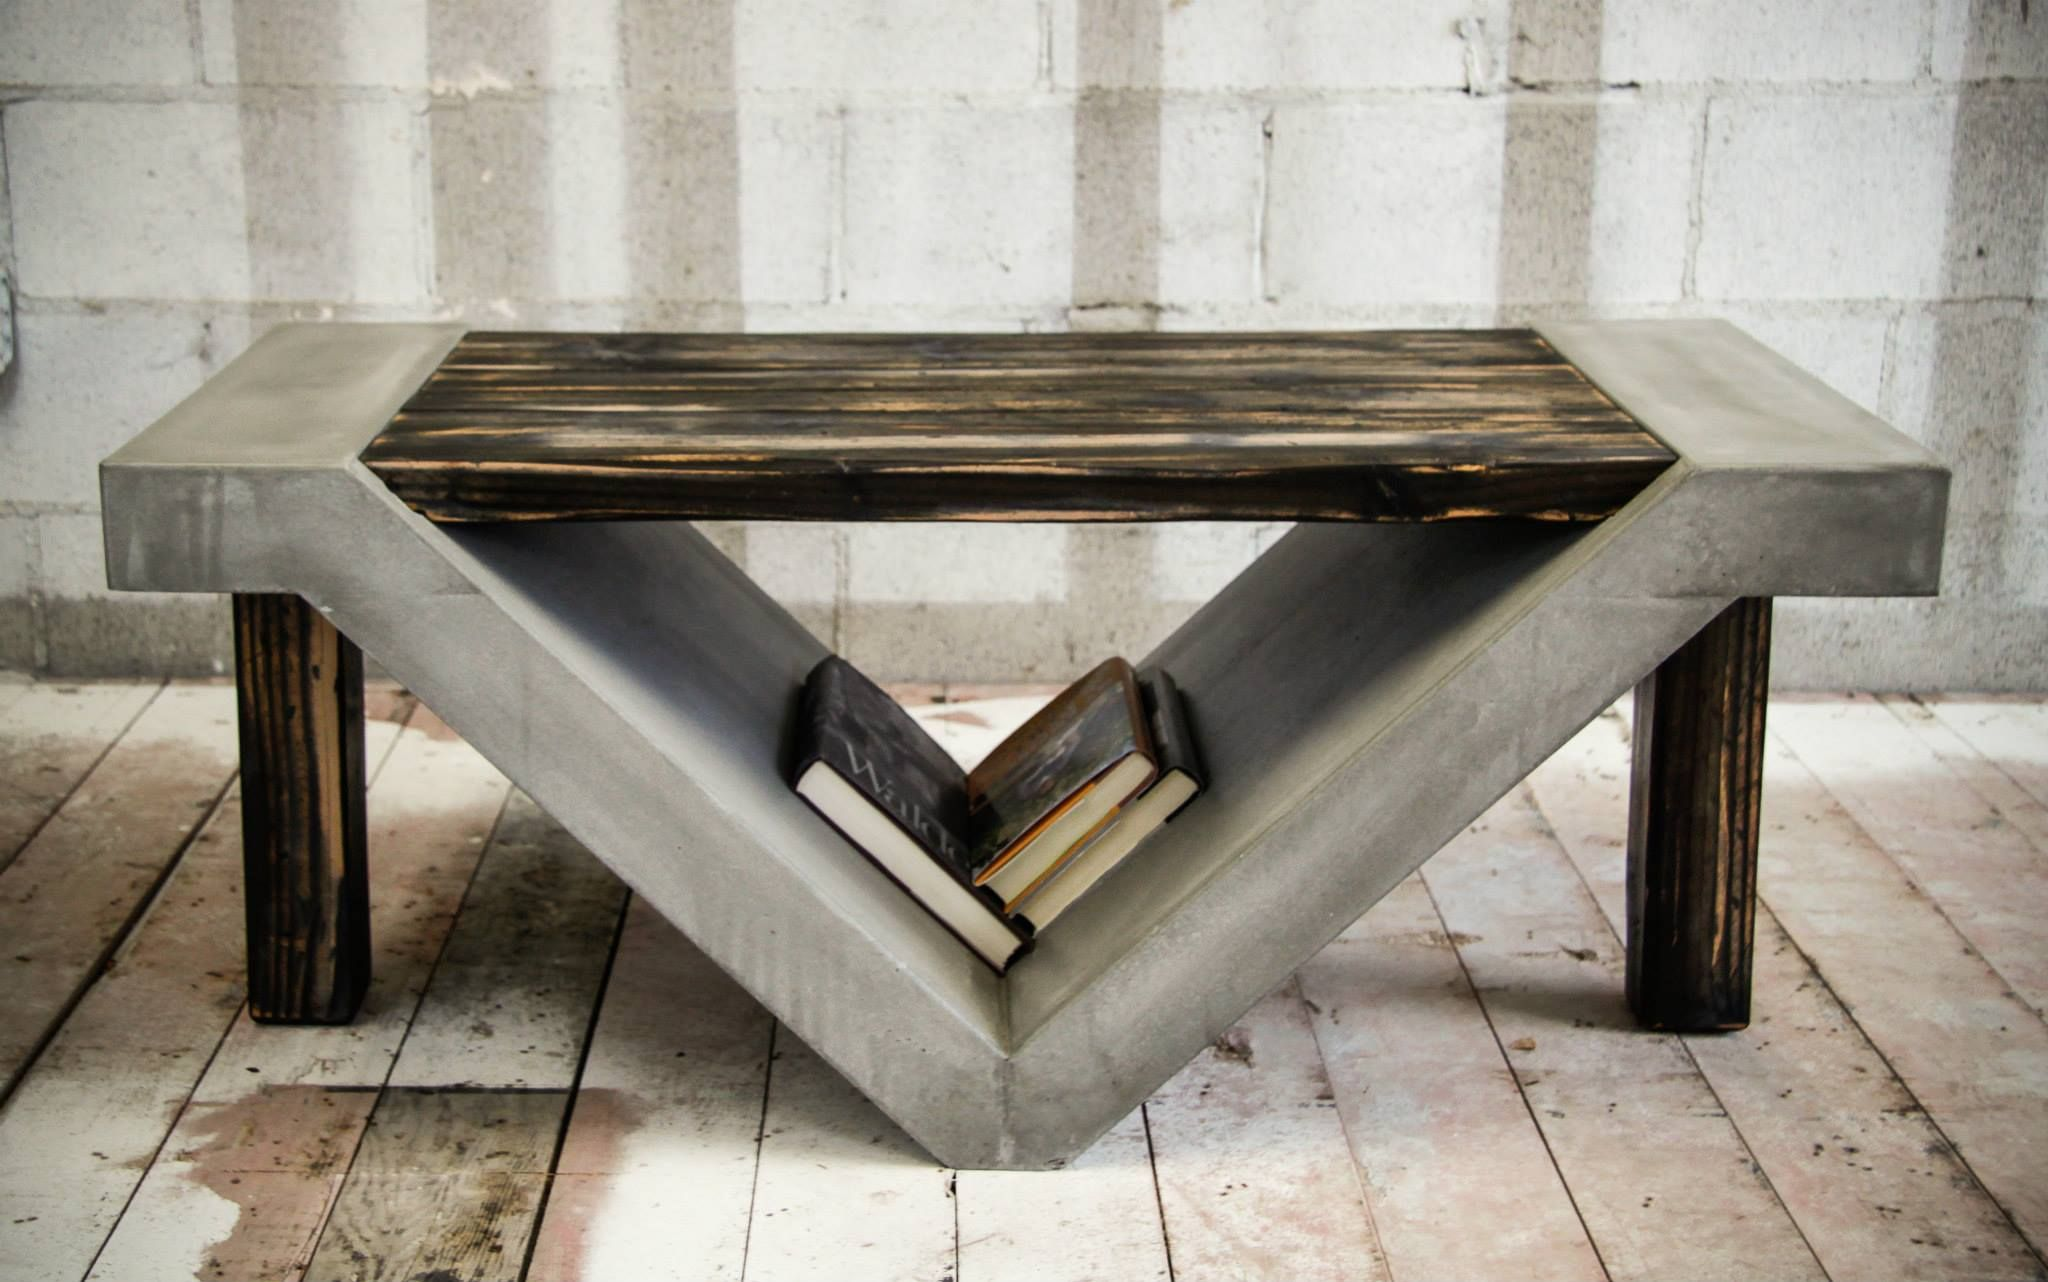 The Slanted Storage Space Beneath This Table Is Perfect For Tucking Away Books And Magazines